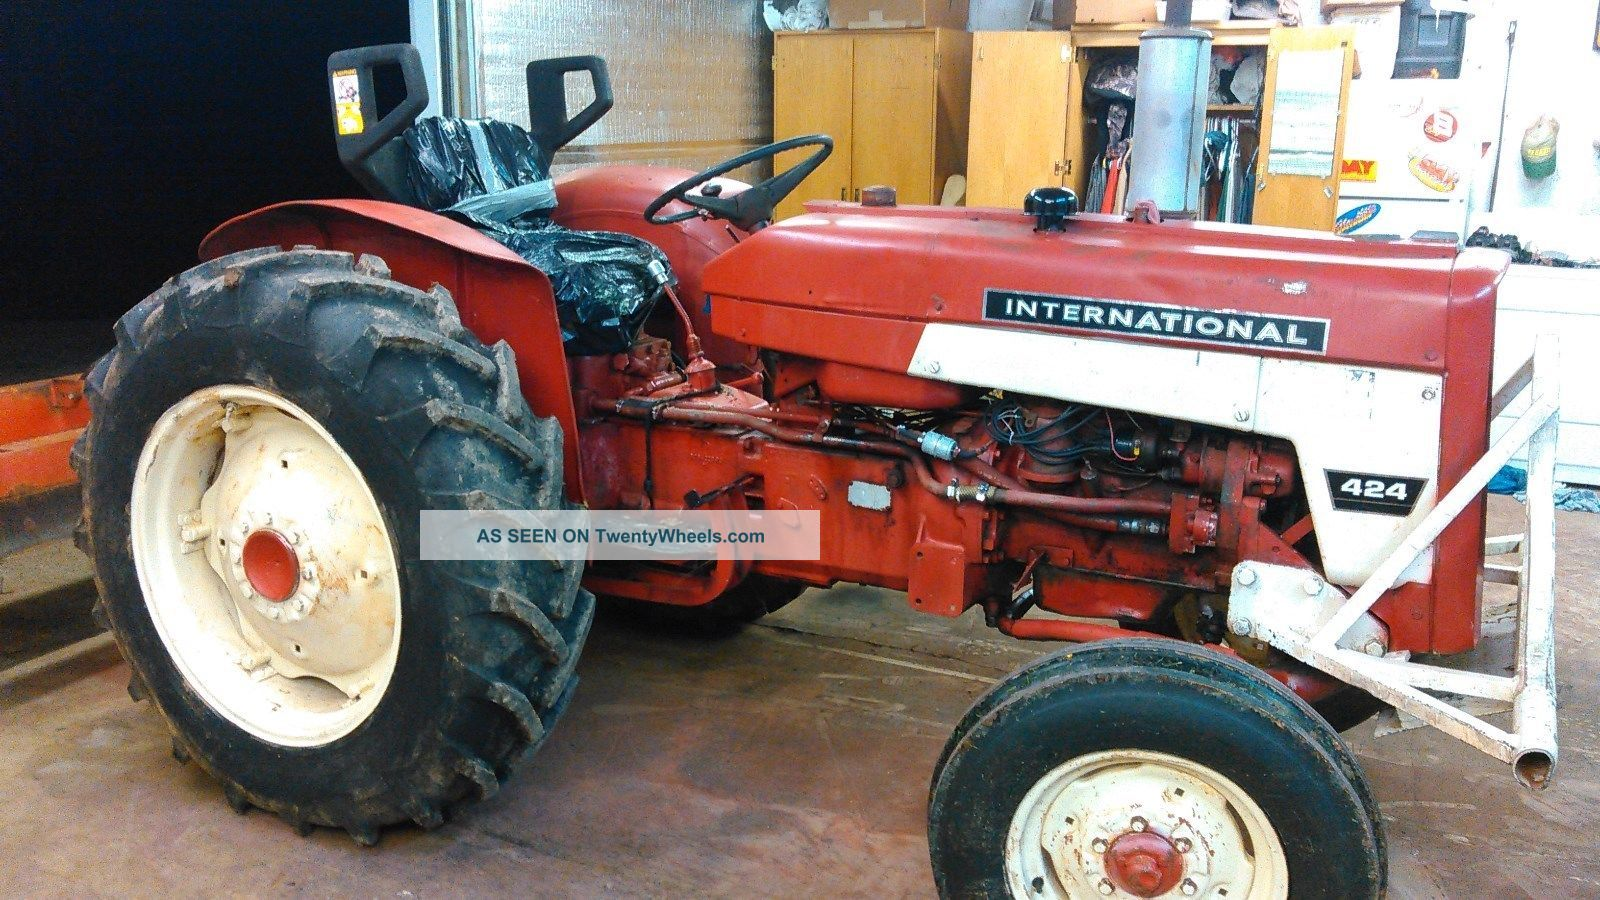 international 424 tractor wiring diagram what is the purpose of er for farmall 706 6 volt